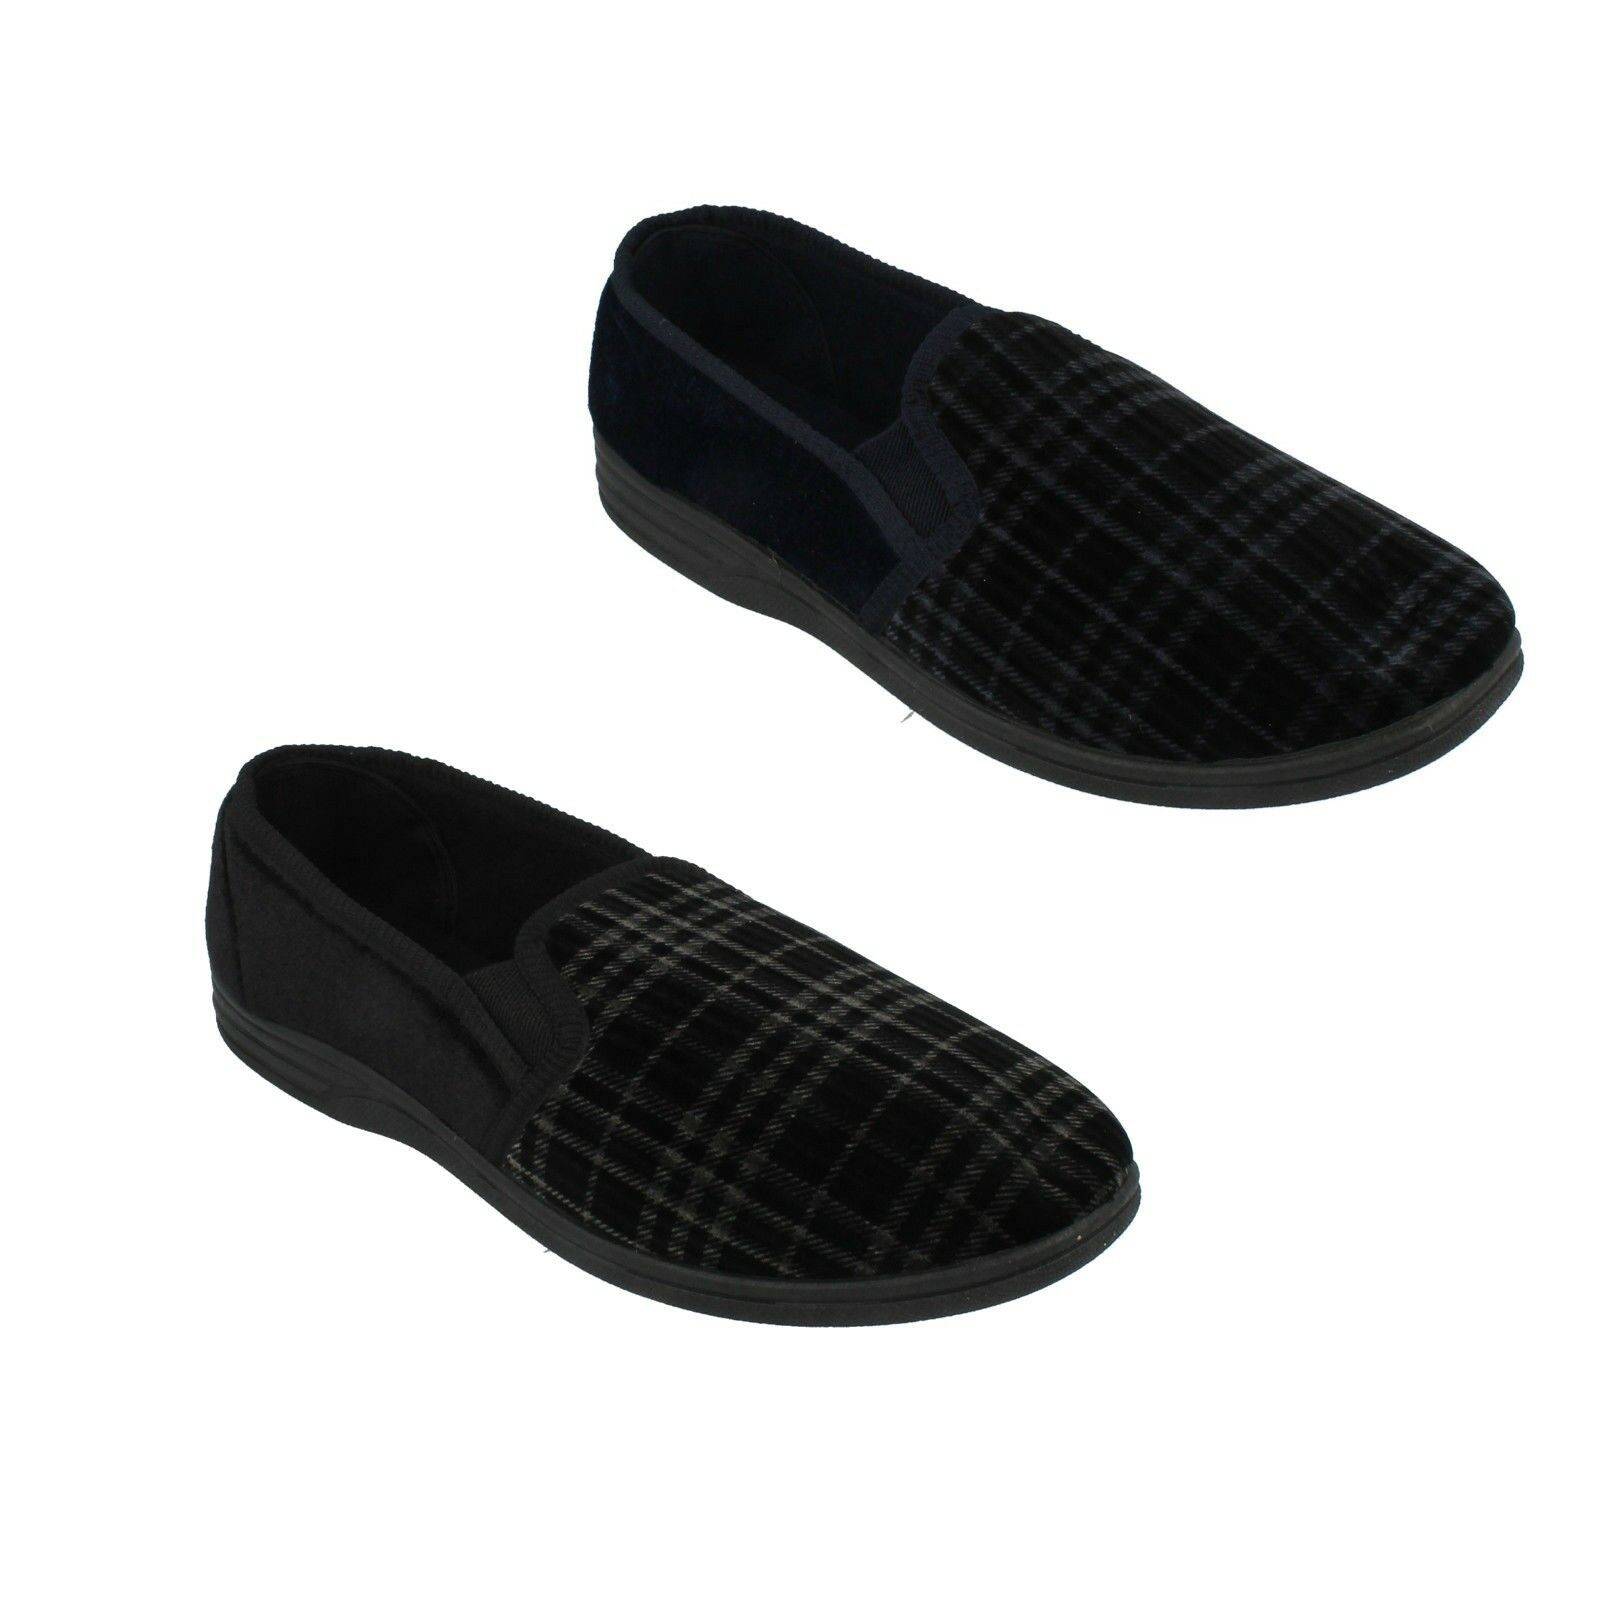 MS60 QUALITY SLIPPERS SLIP ON INDOOR MOCCASINS TWO SIDE SIDE SIDE GUSSETS MENS SHOES 226569